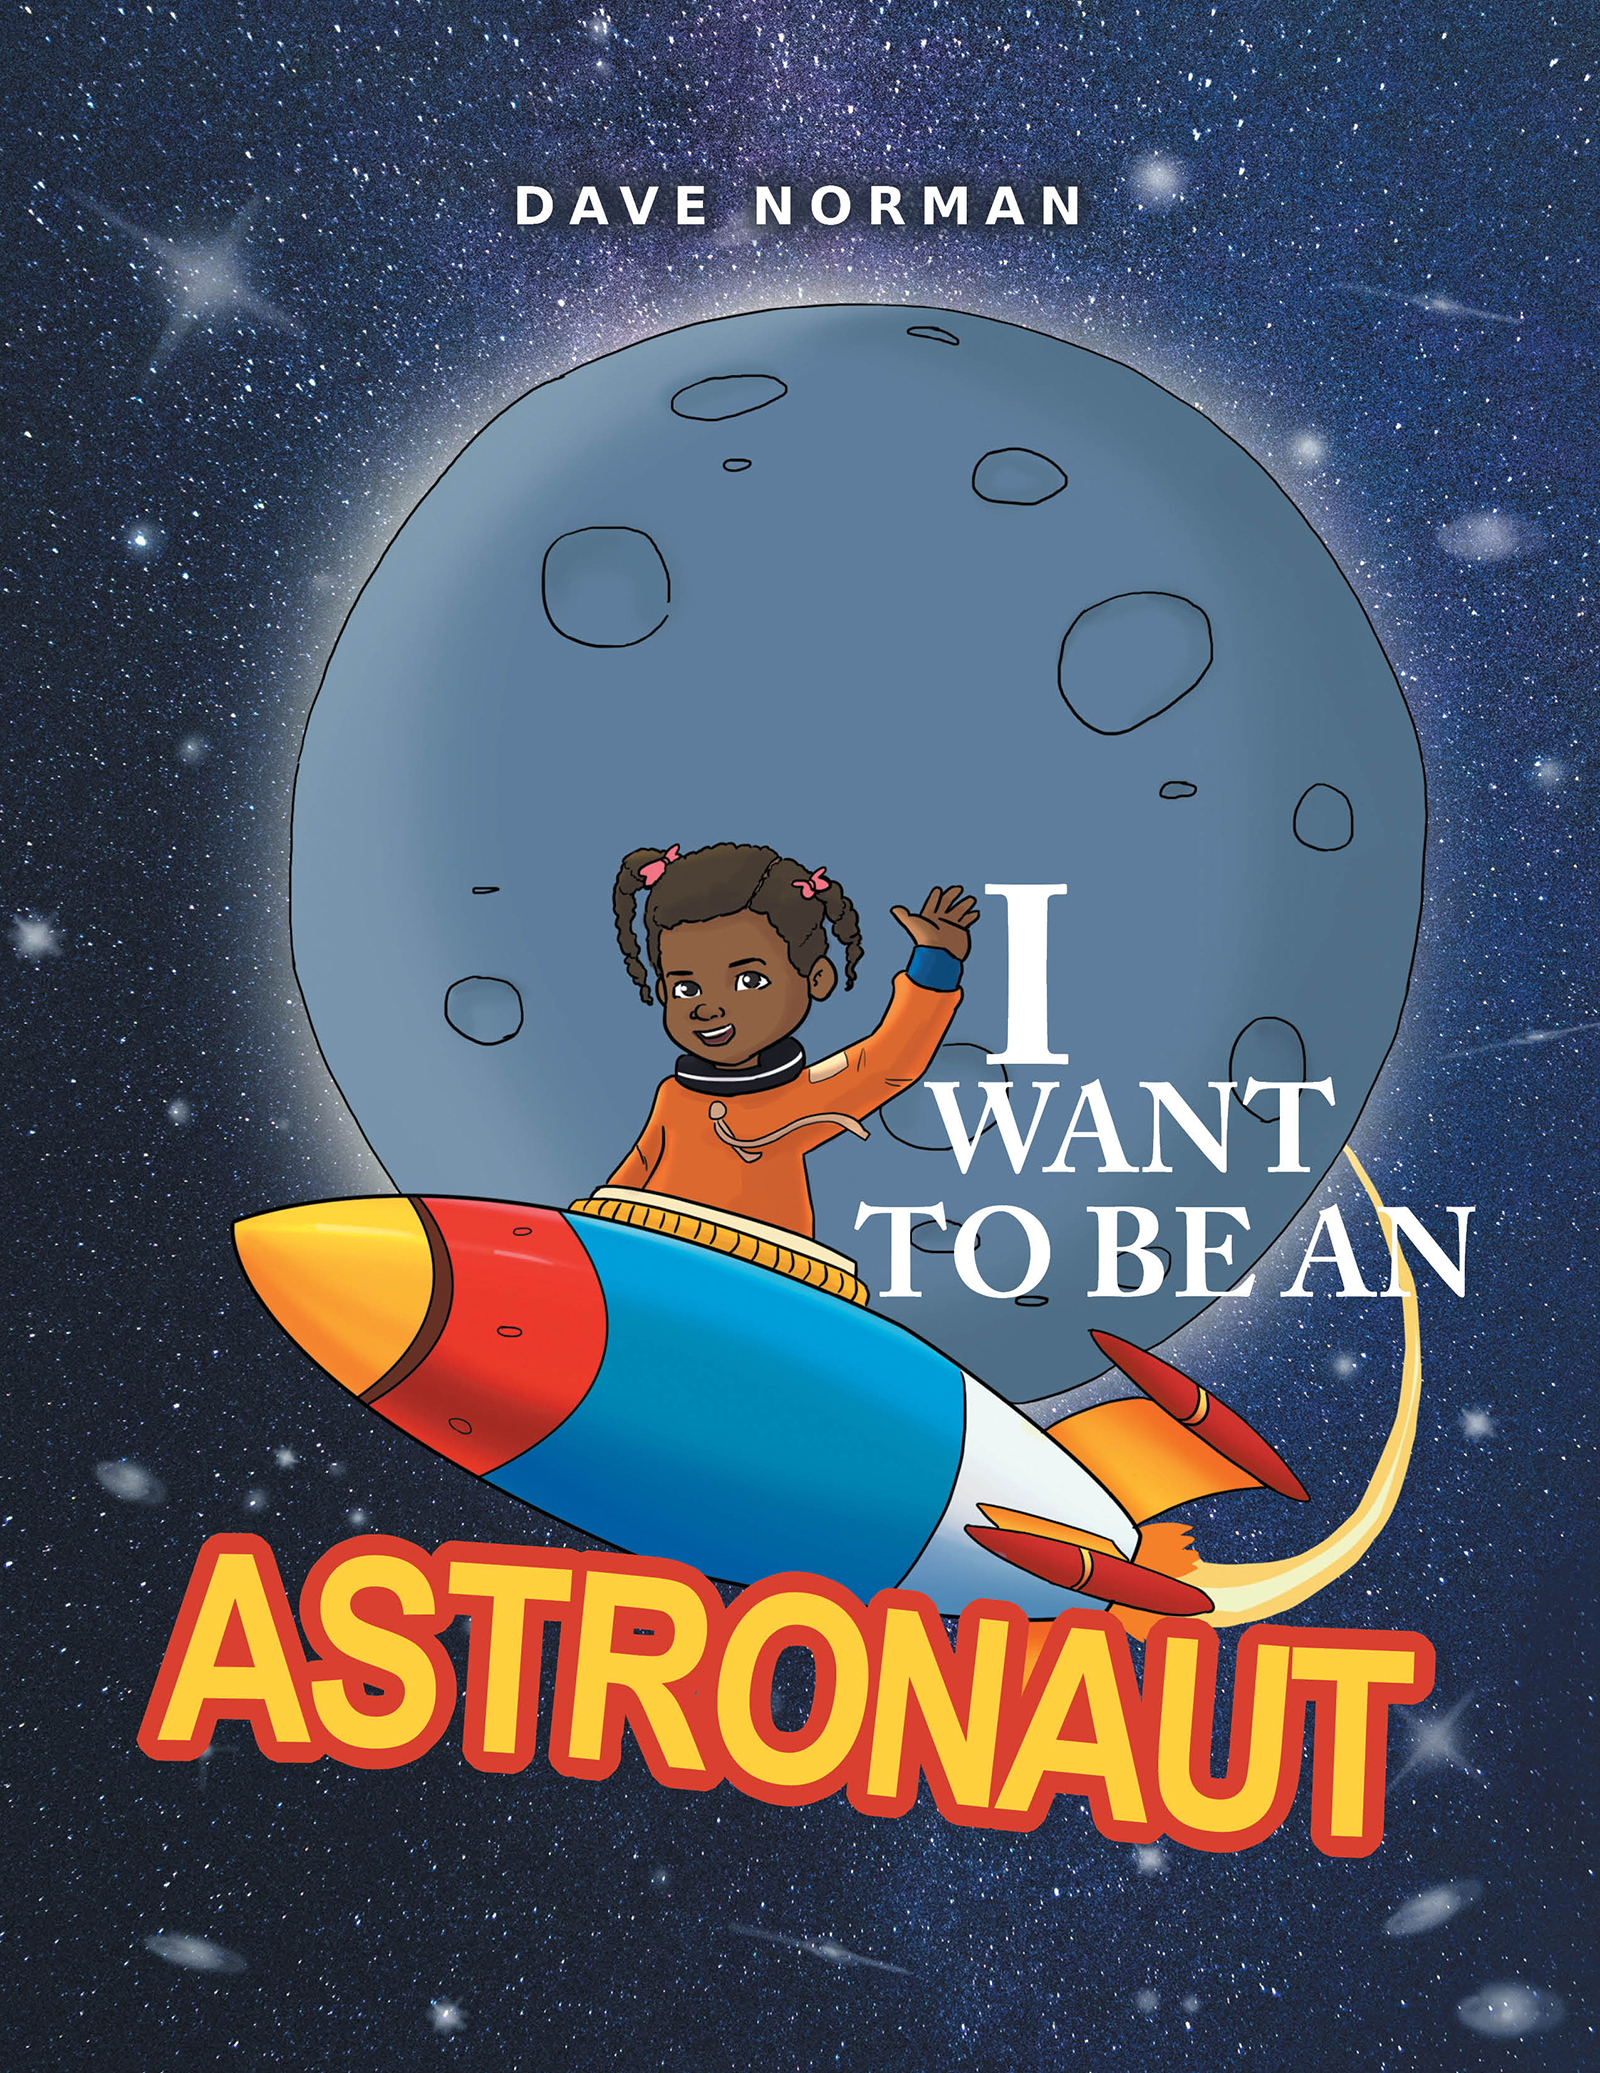 An awesome astronomical children's book for curious kids